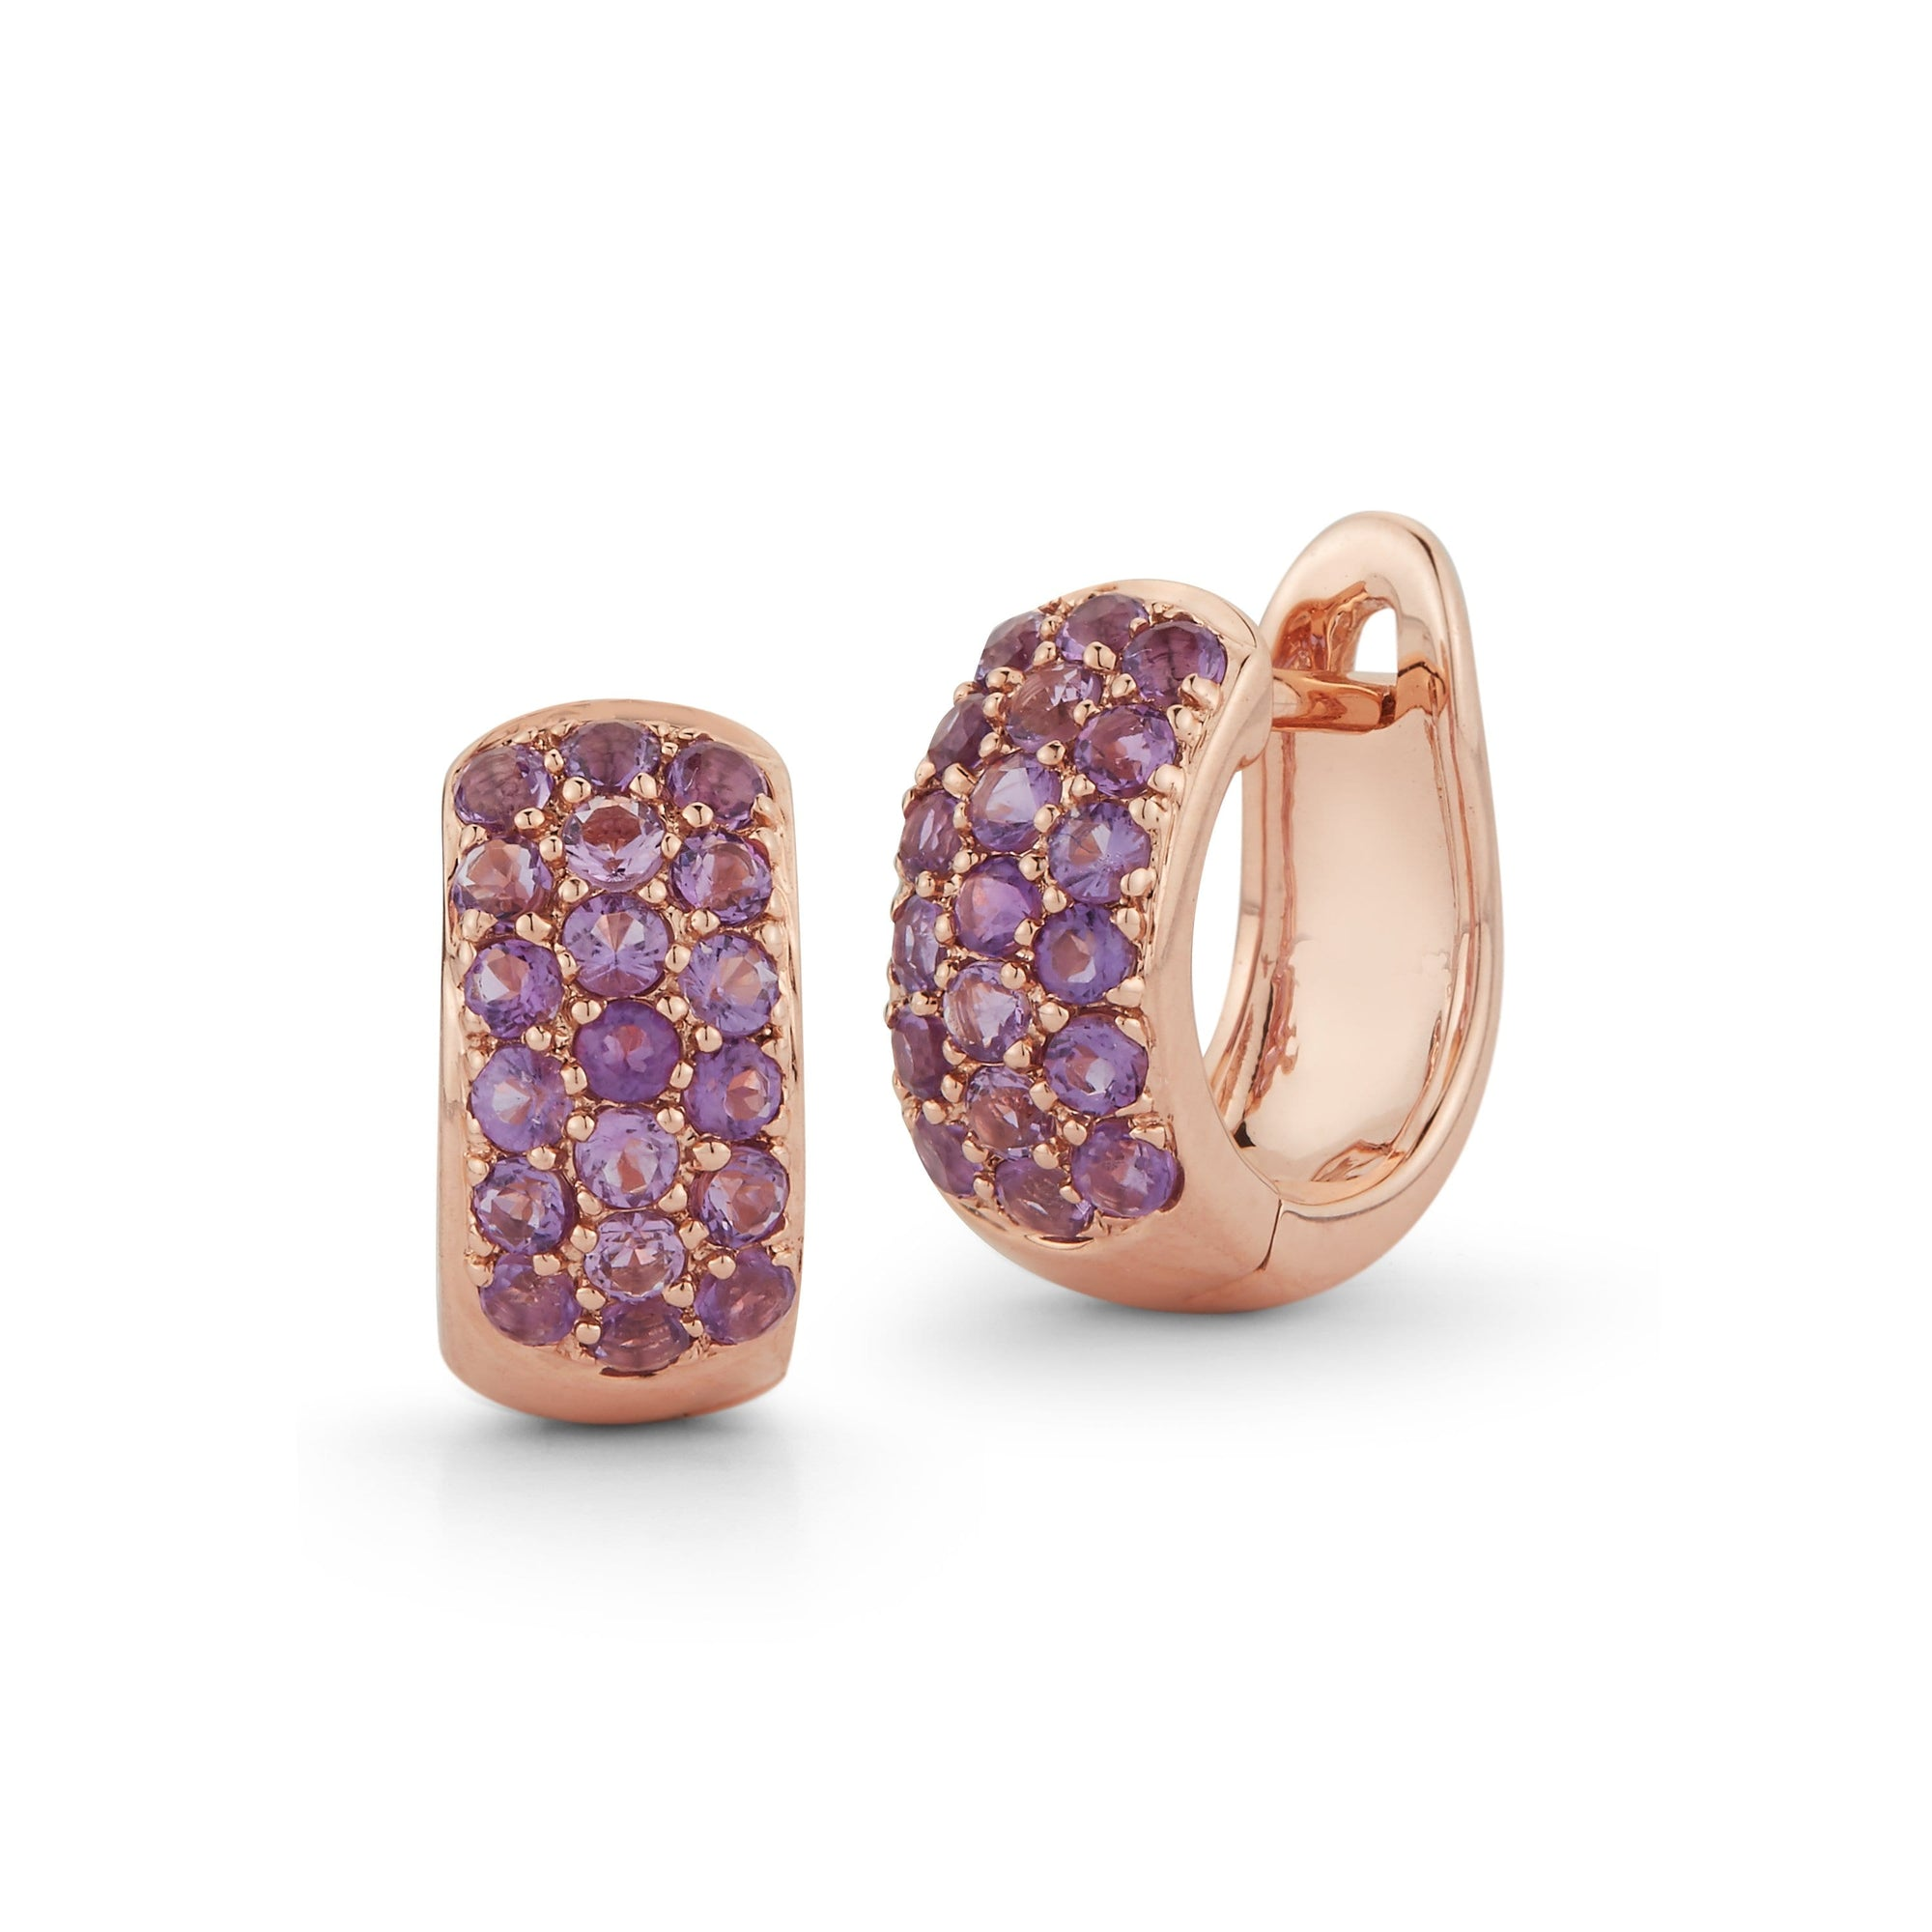 Vincents Fine Jewelry | Dana Rebecca | DRD Amethyst Huggies